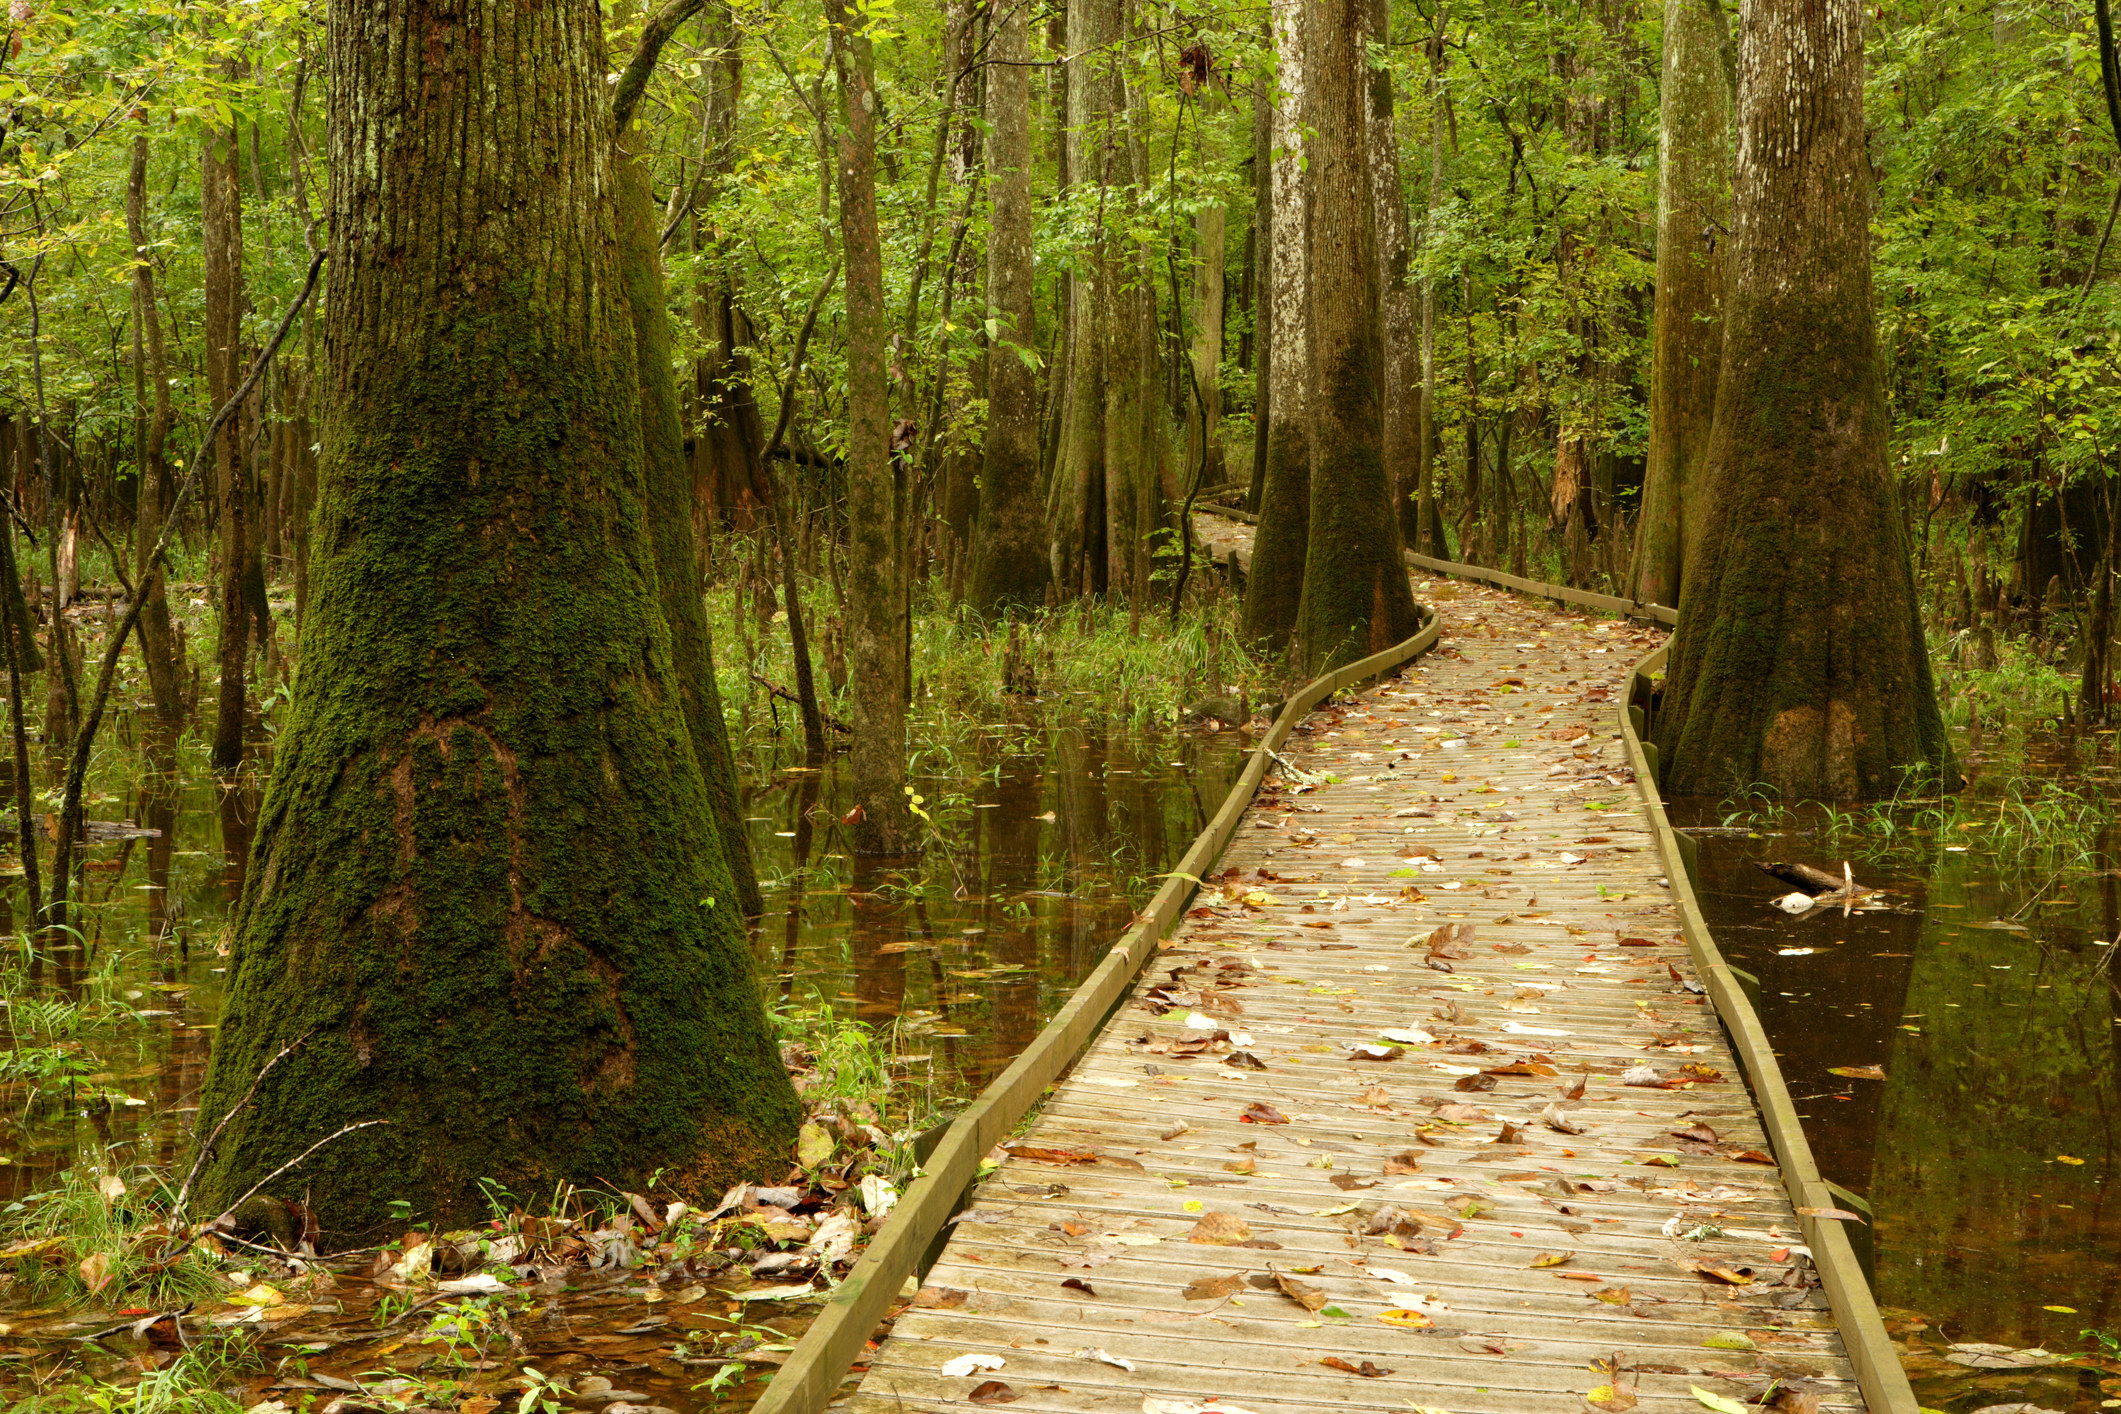 A paved boardwalk passing through tall trees in Congaree National Park.